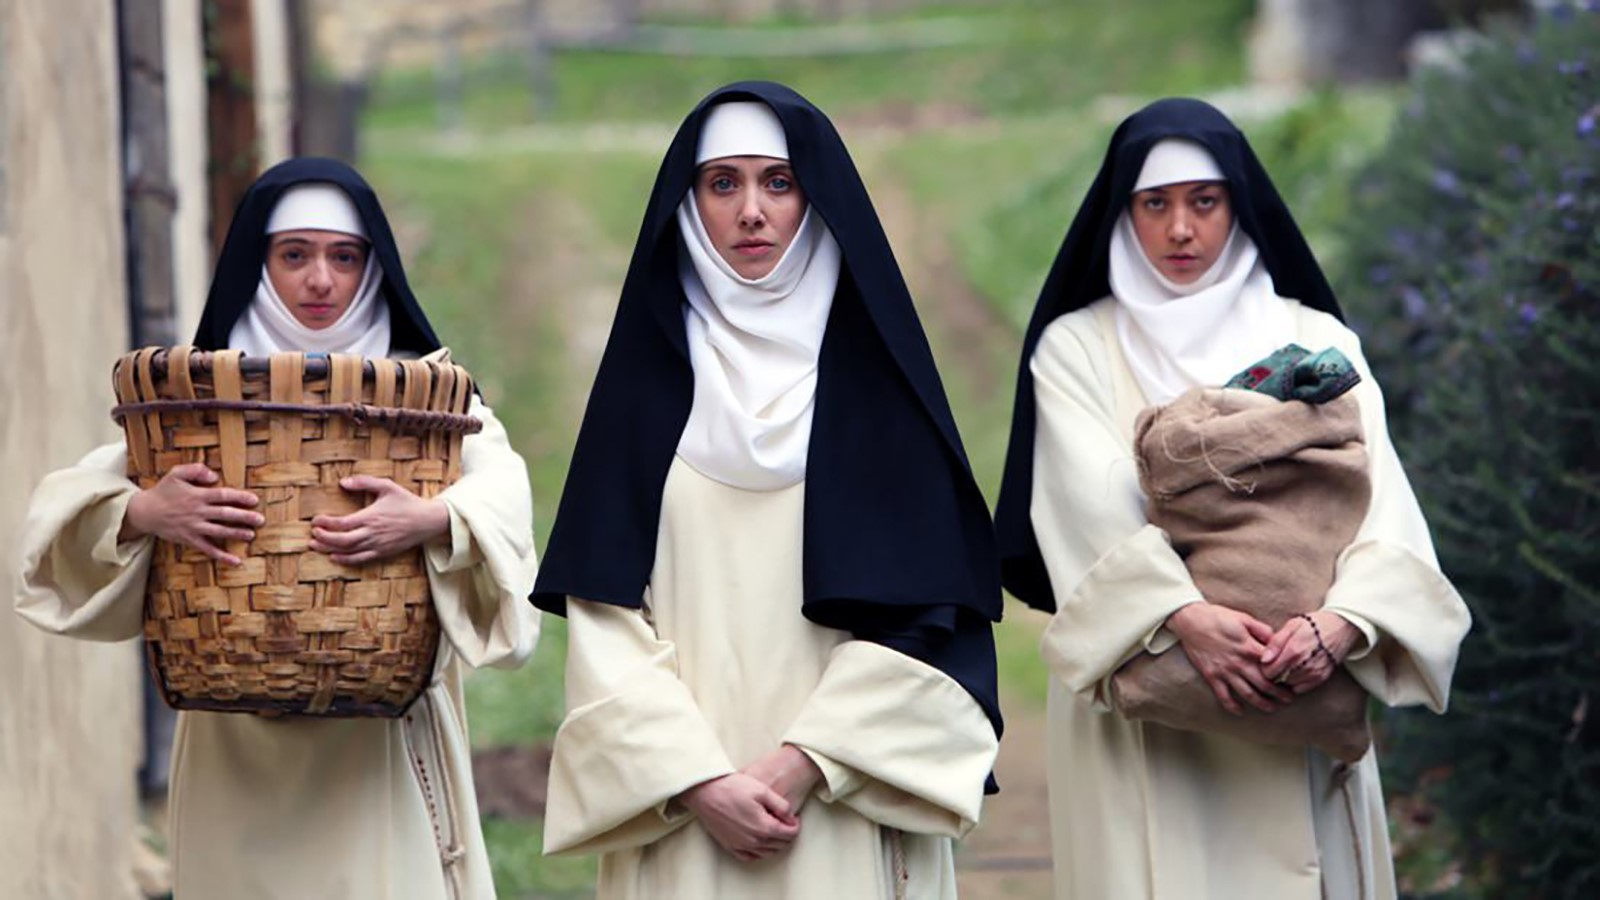 'The Little Hours' is as gut-busting as it is sacrilegious